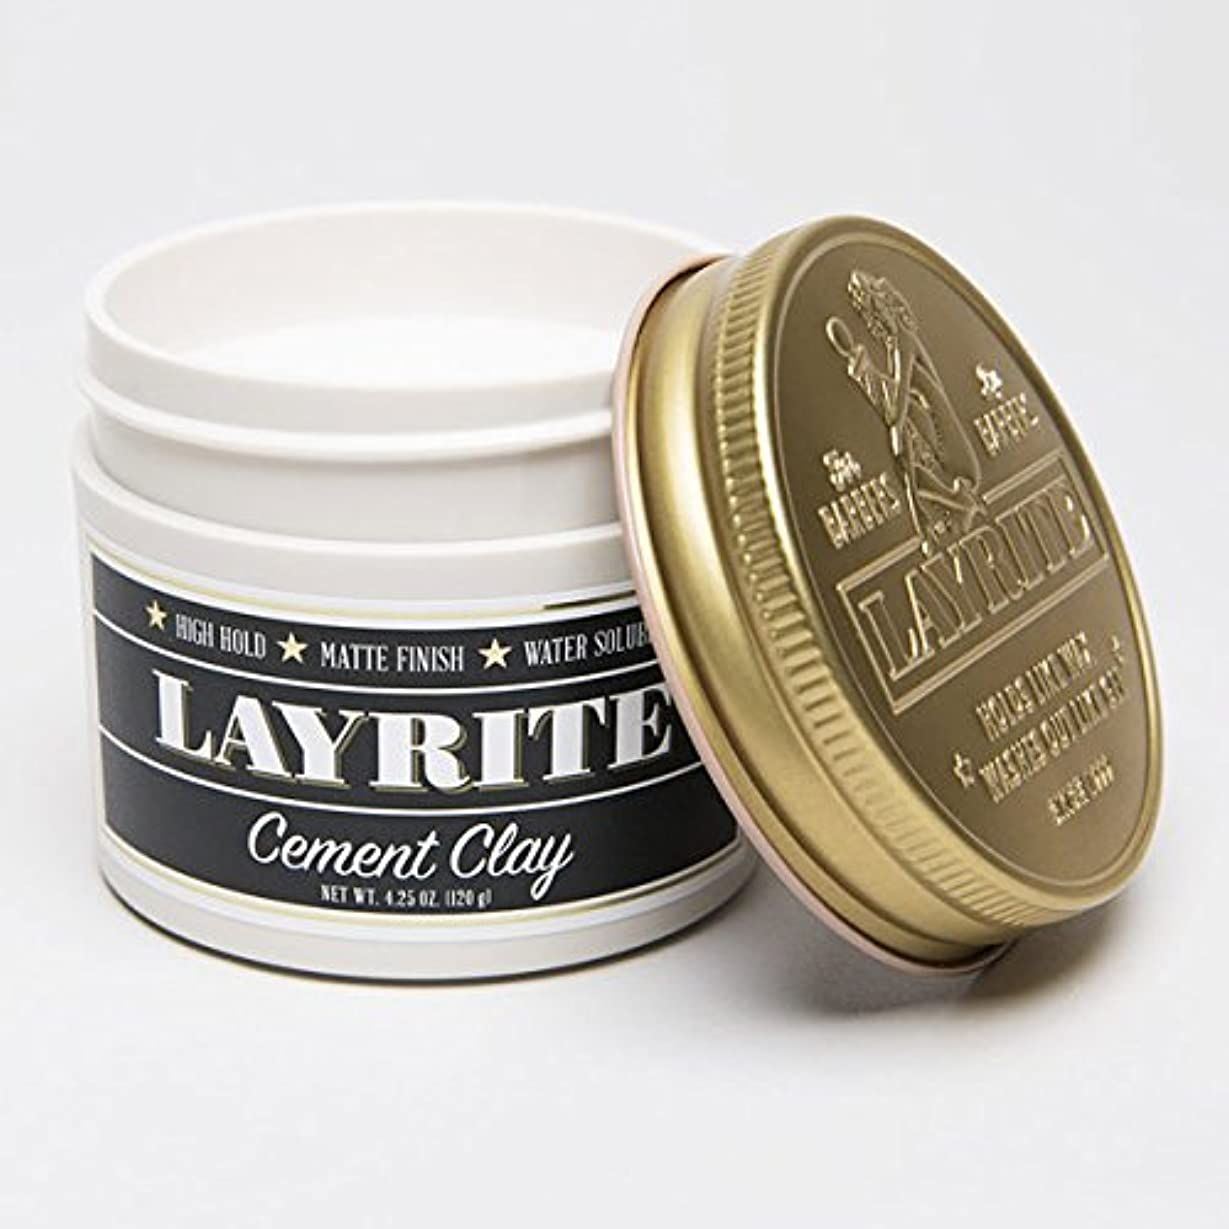 LAYRITE レイライト 【CEMENT HAIR CLAY Pomade】 水性ポマード セメントホールド 4.25OZ(約120G)